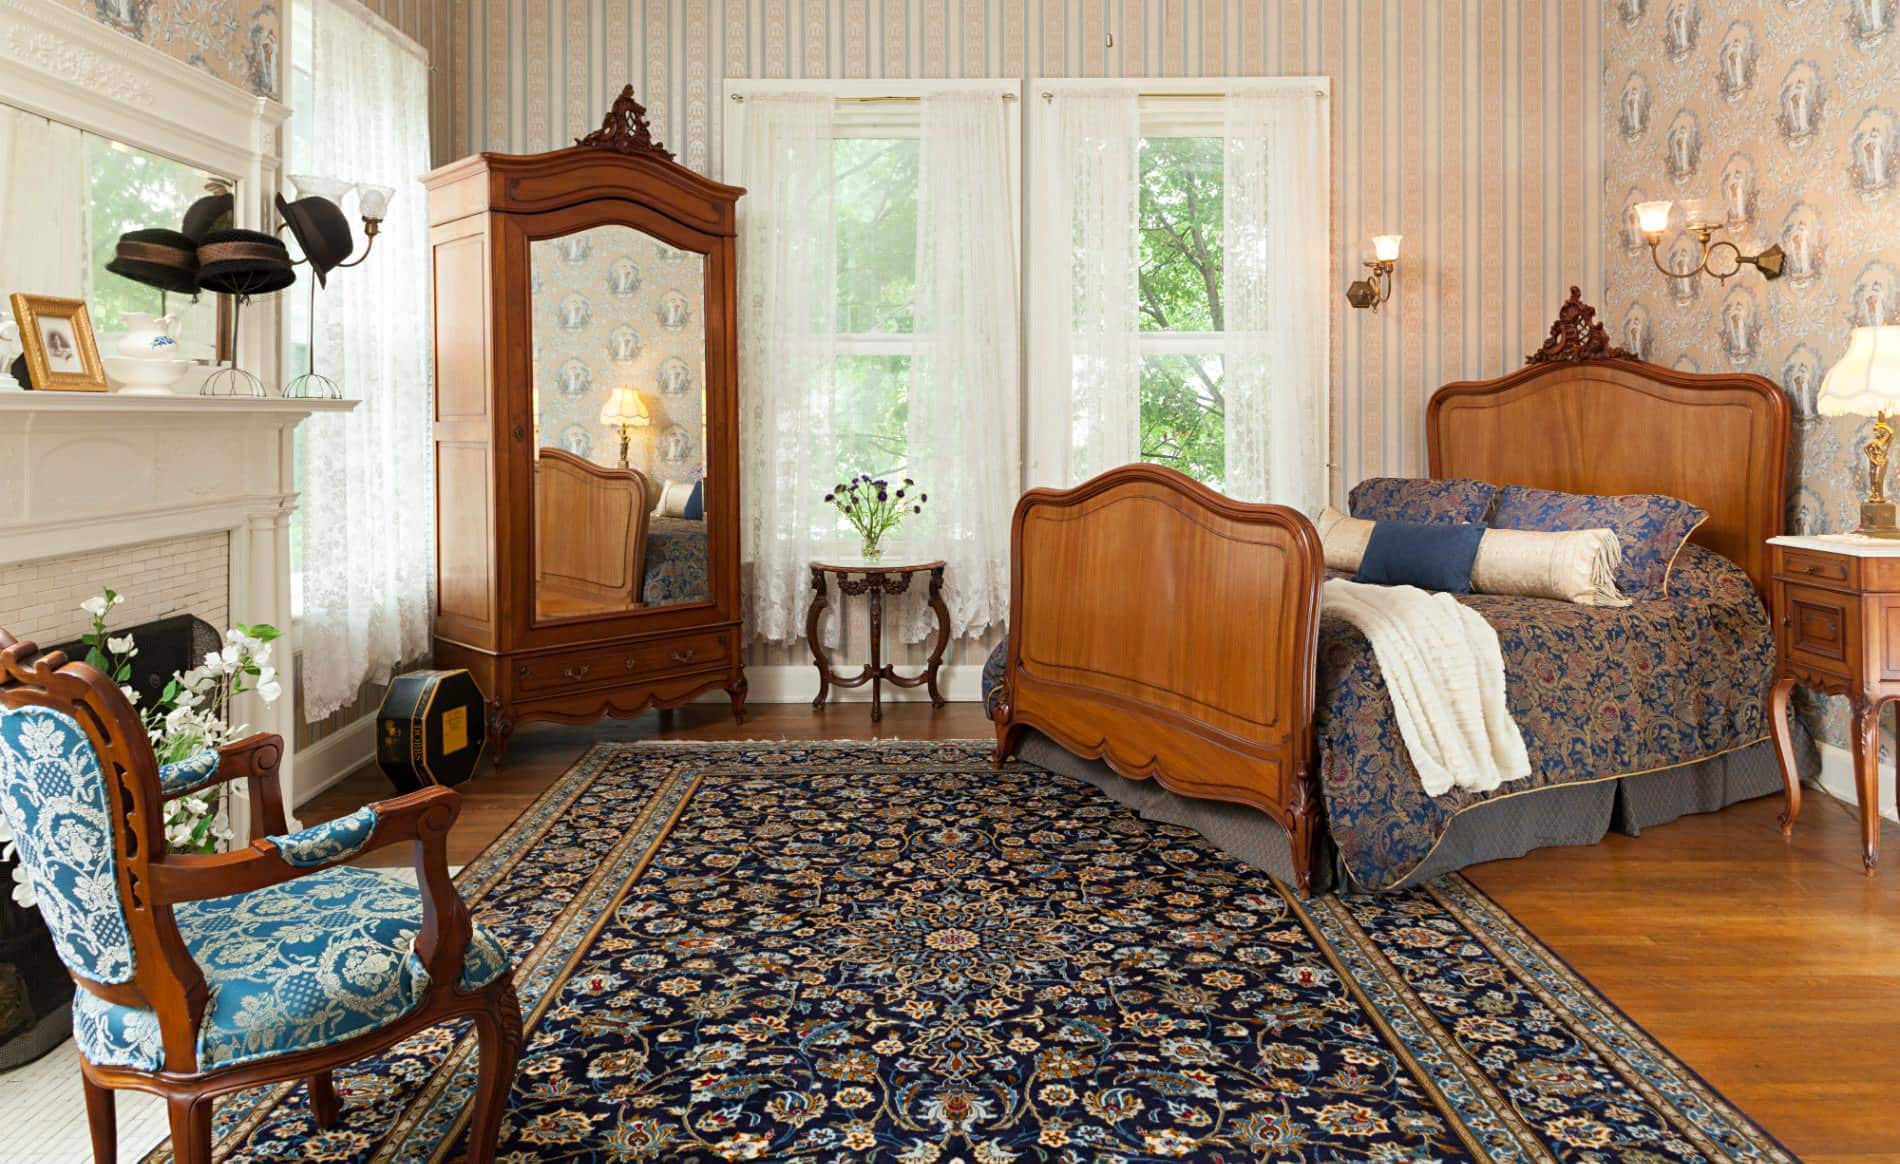 Blue and beige papered walls, wood floors, white lace curtains, wood bed, mirrored cabinet and lots of natural light